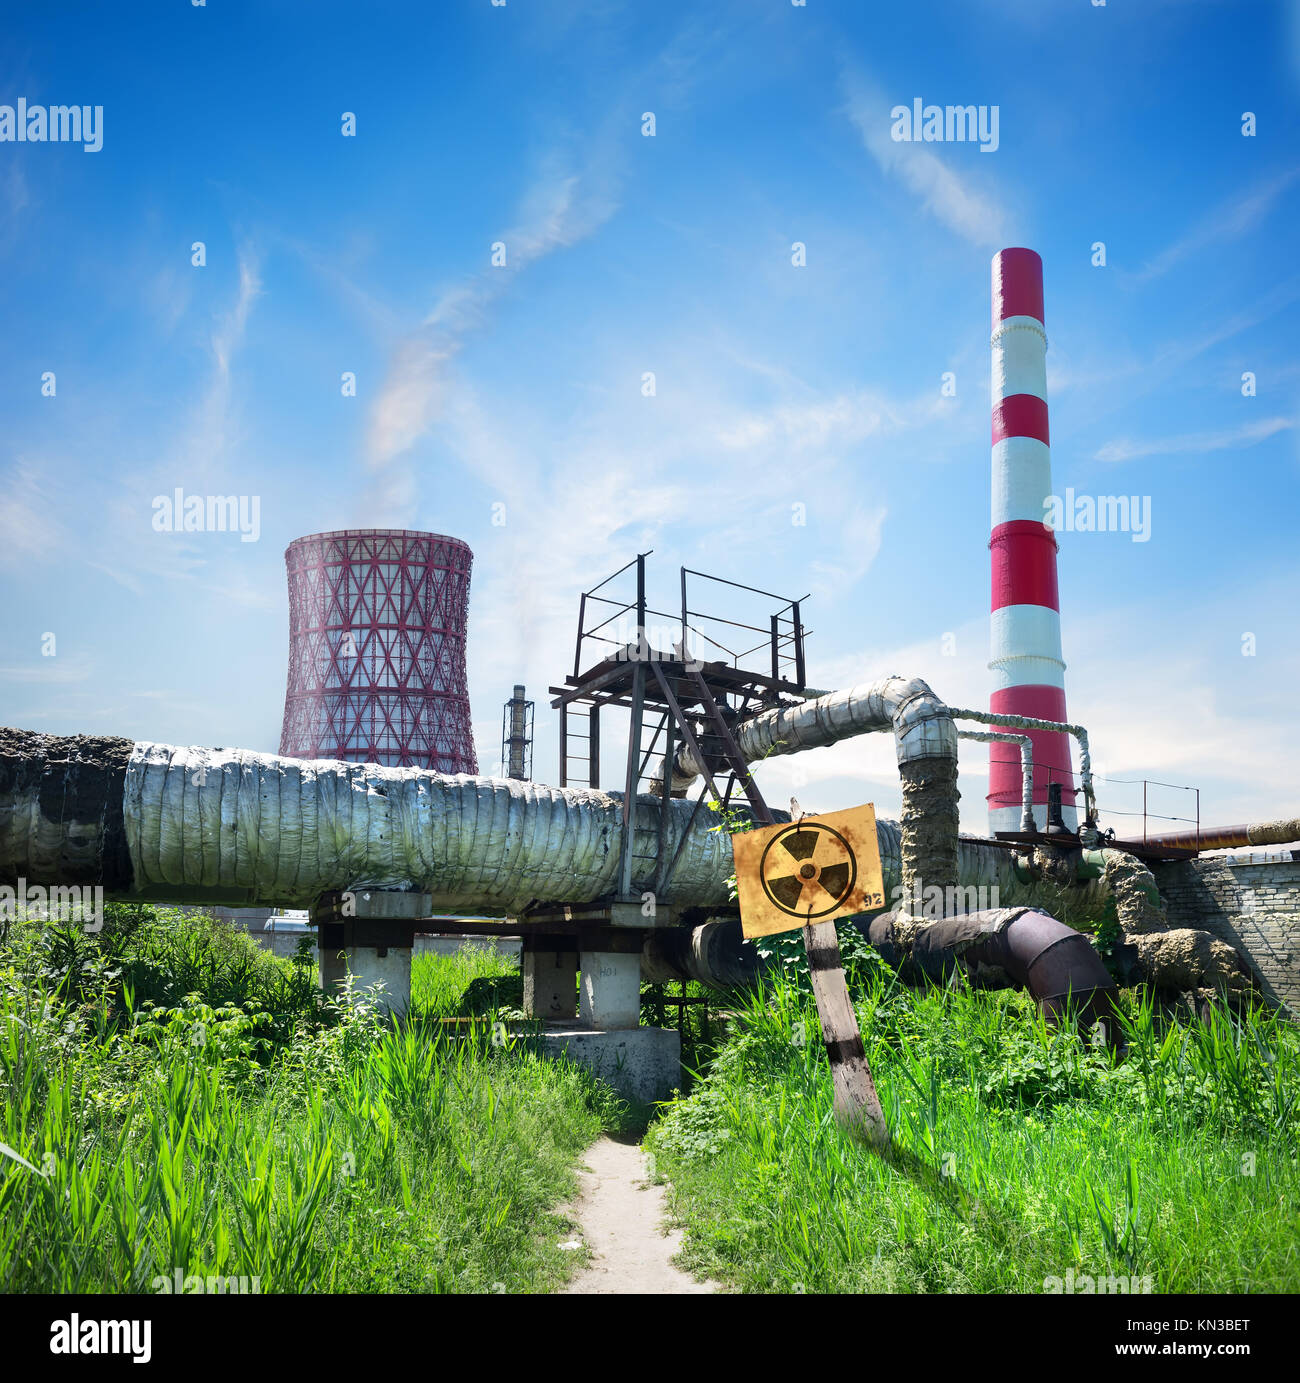 Nuclear reactor and smoke stack in afternoon. - Stock Image